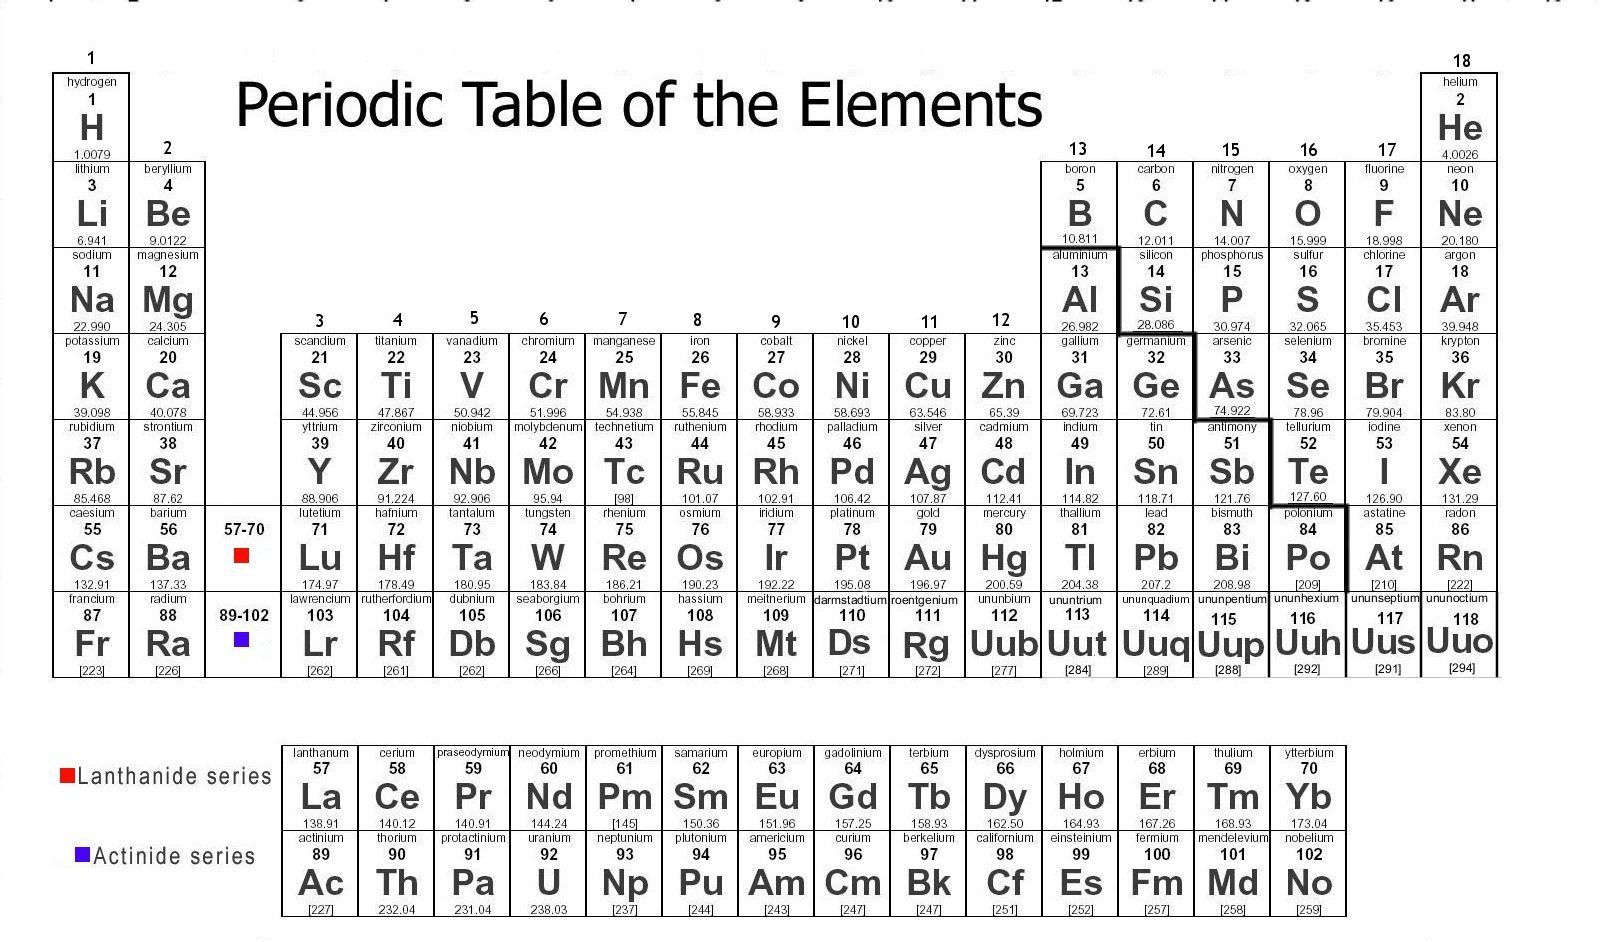 Periodic table of elements with everything periodic table of elements with everything msps09stheperiodictablepopupg gamestrikefo Choice Image